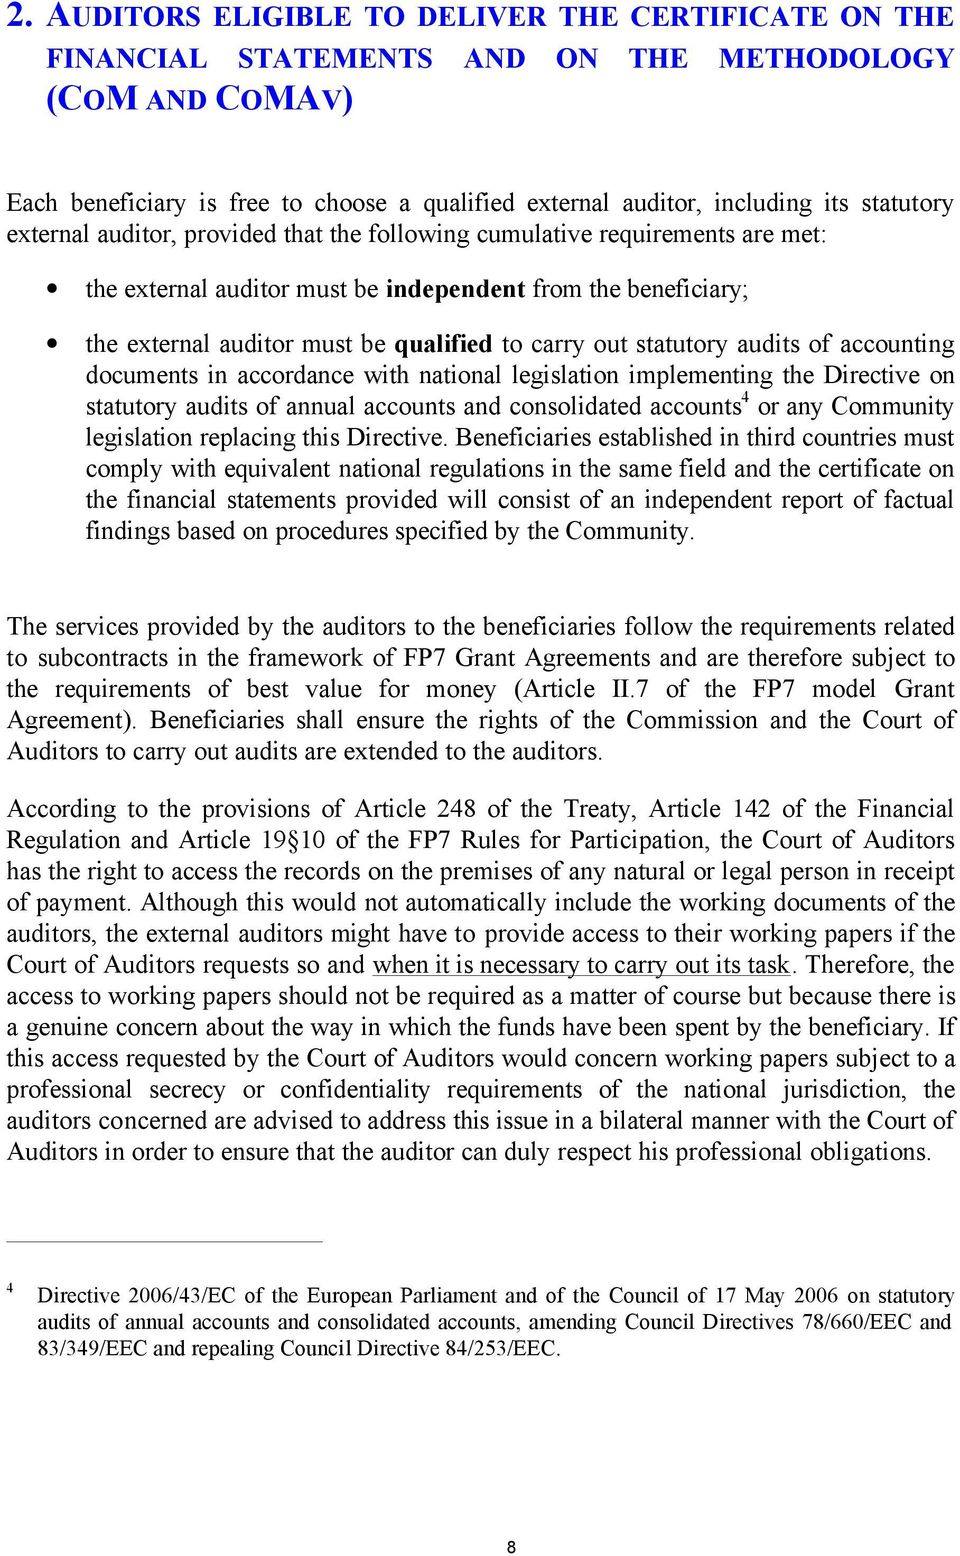 out statutory audits of accounting documents in accordance with national legislation implementing the Directive on statutory audits of annual accounts and consolidated accounts 4 or any Community